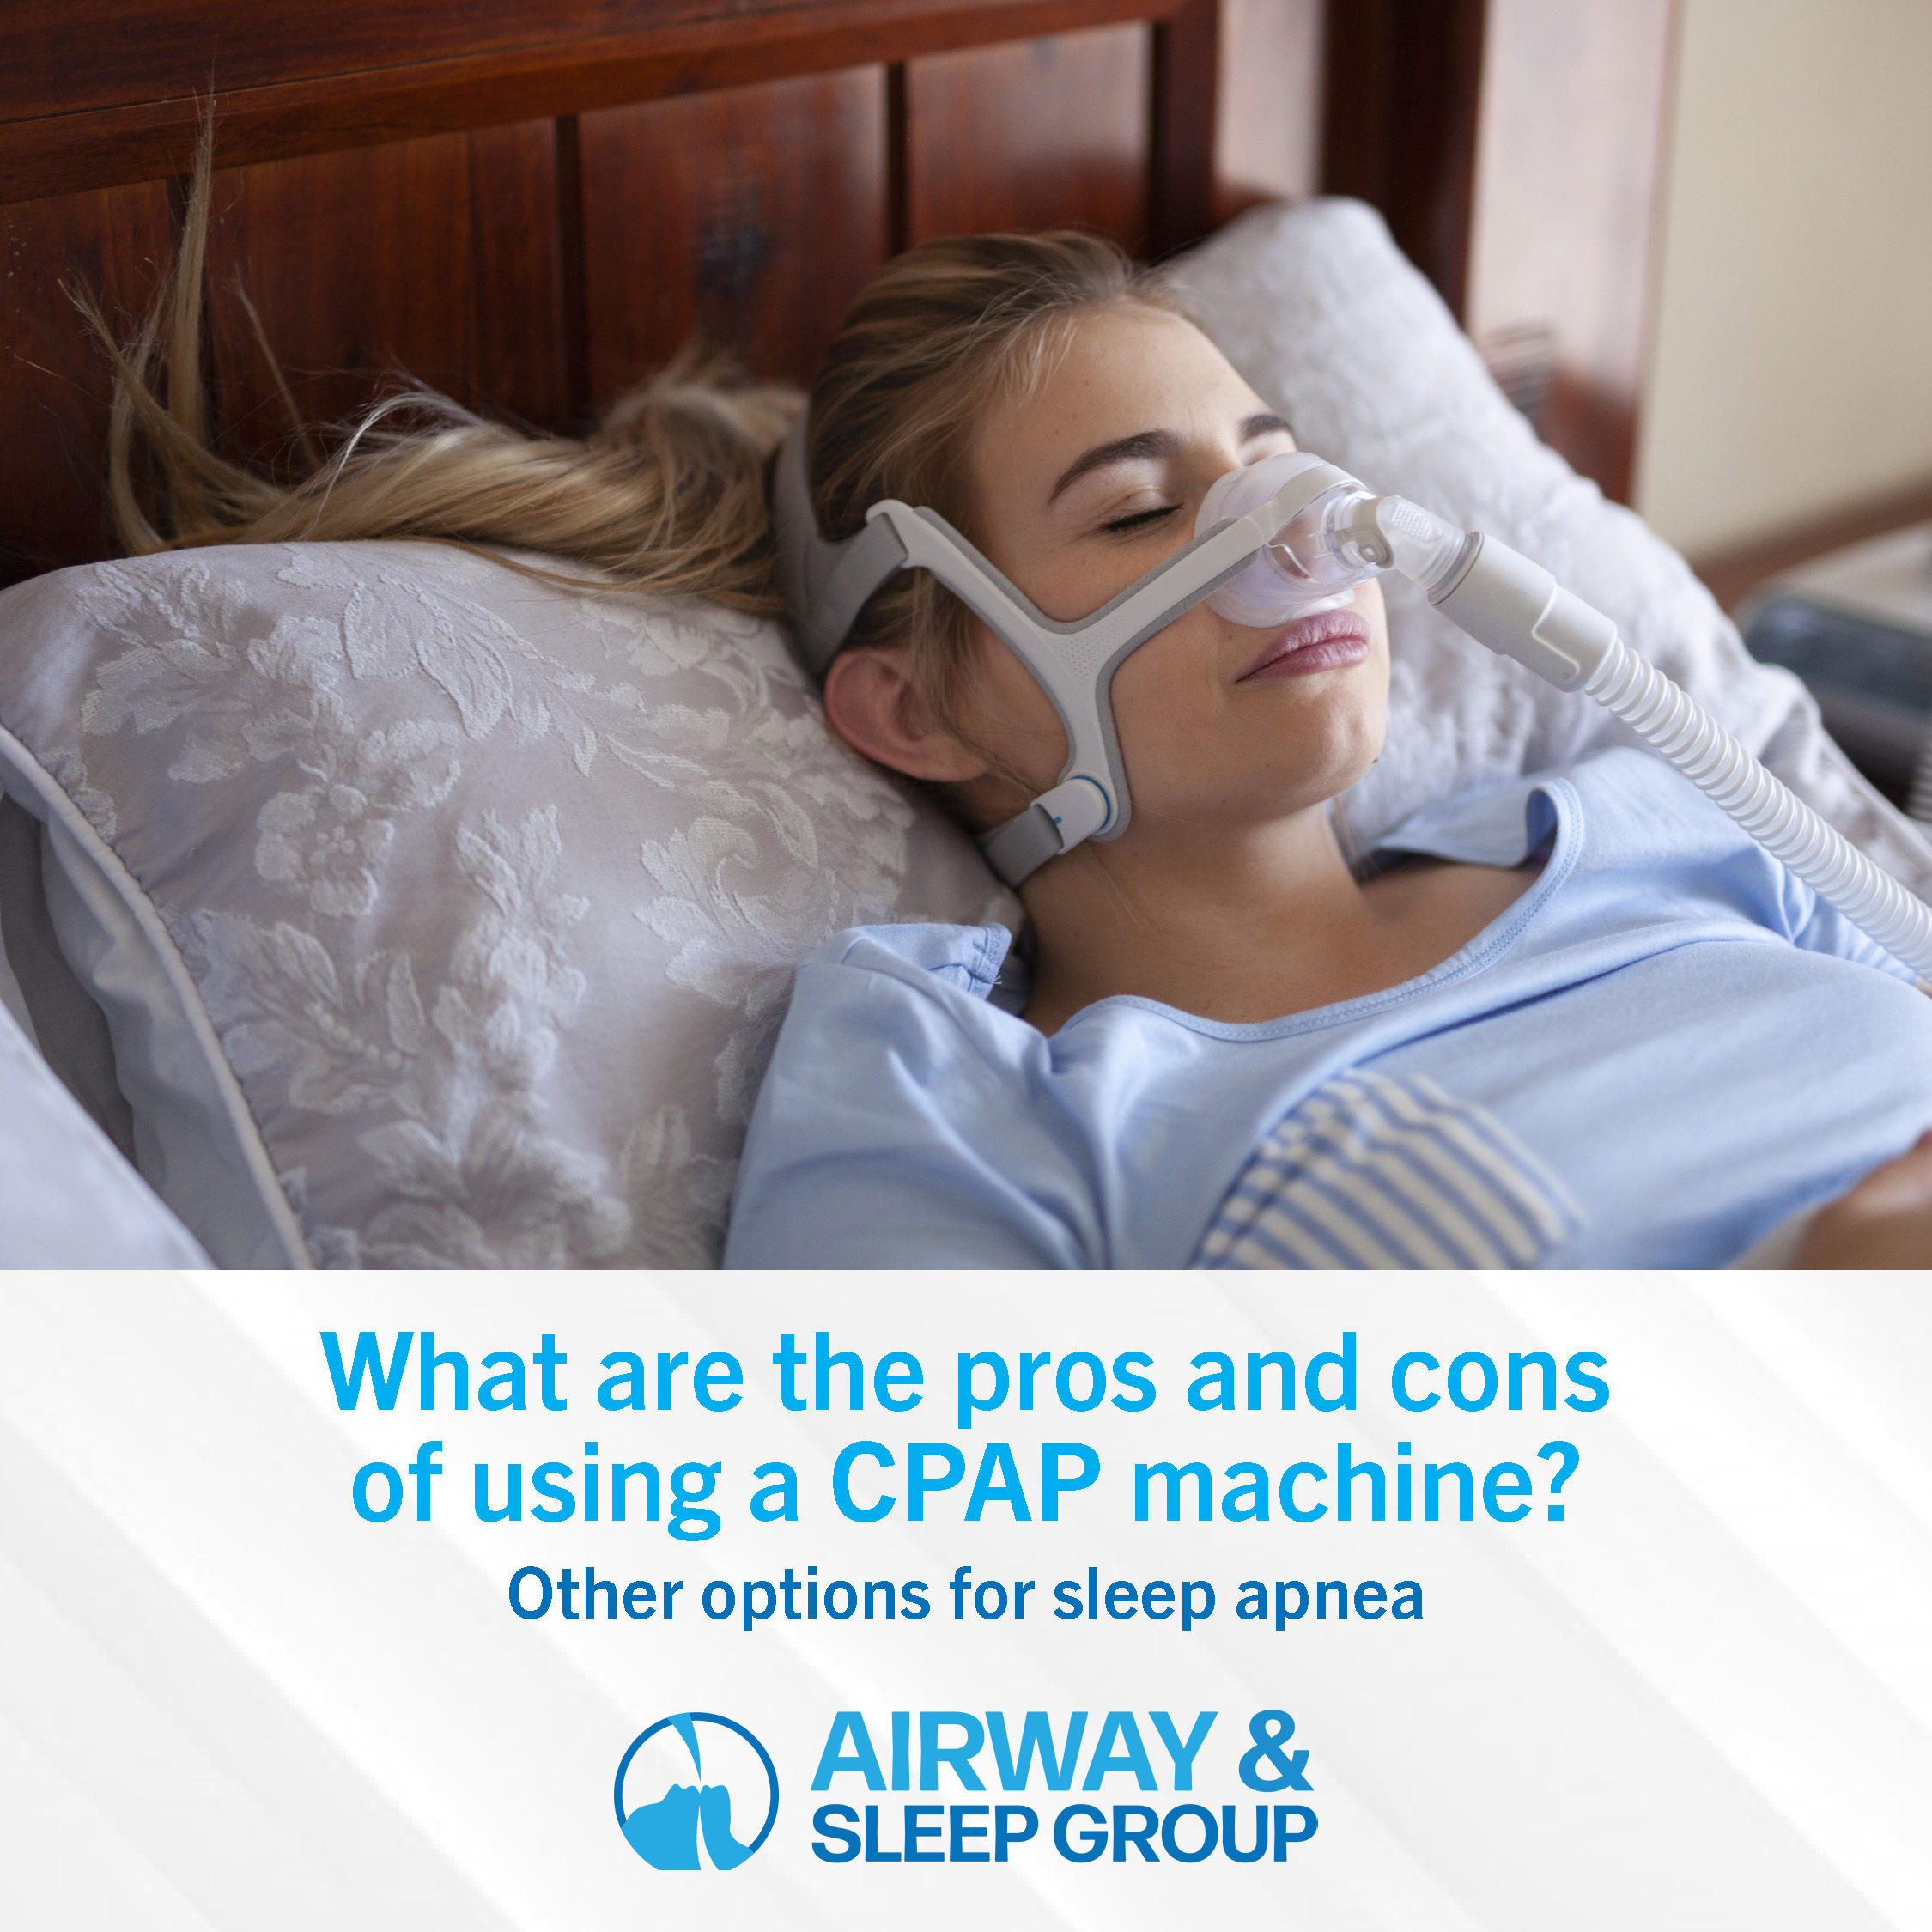 What are the pros and cons of using a CPAP machine?